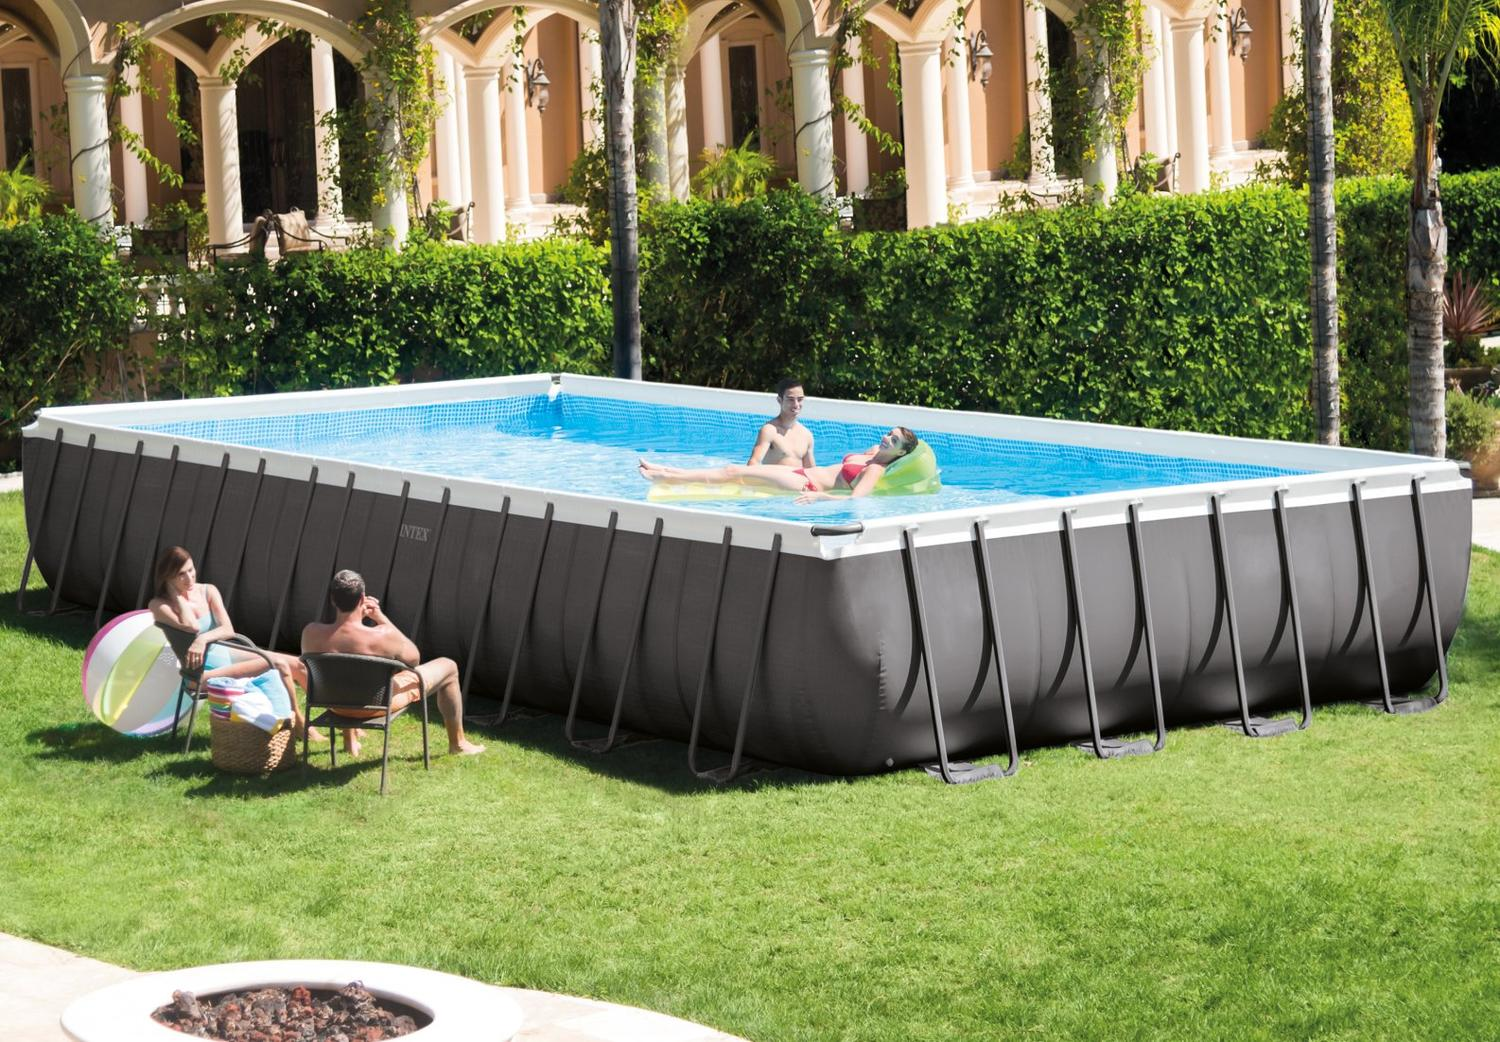 Piscina fuoriterra intex 28372 ultraframe rettangolare for Piscine intex liner